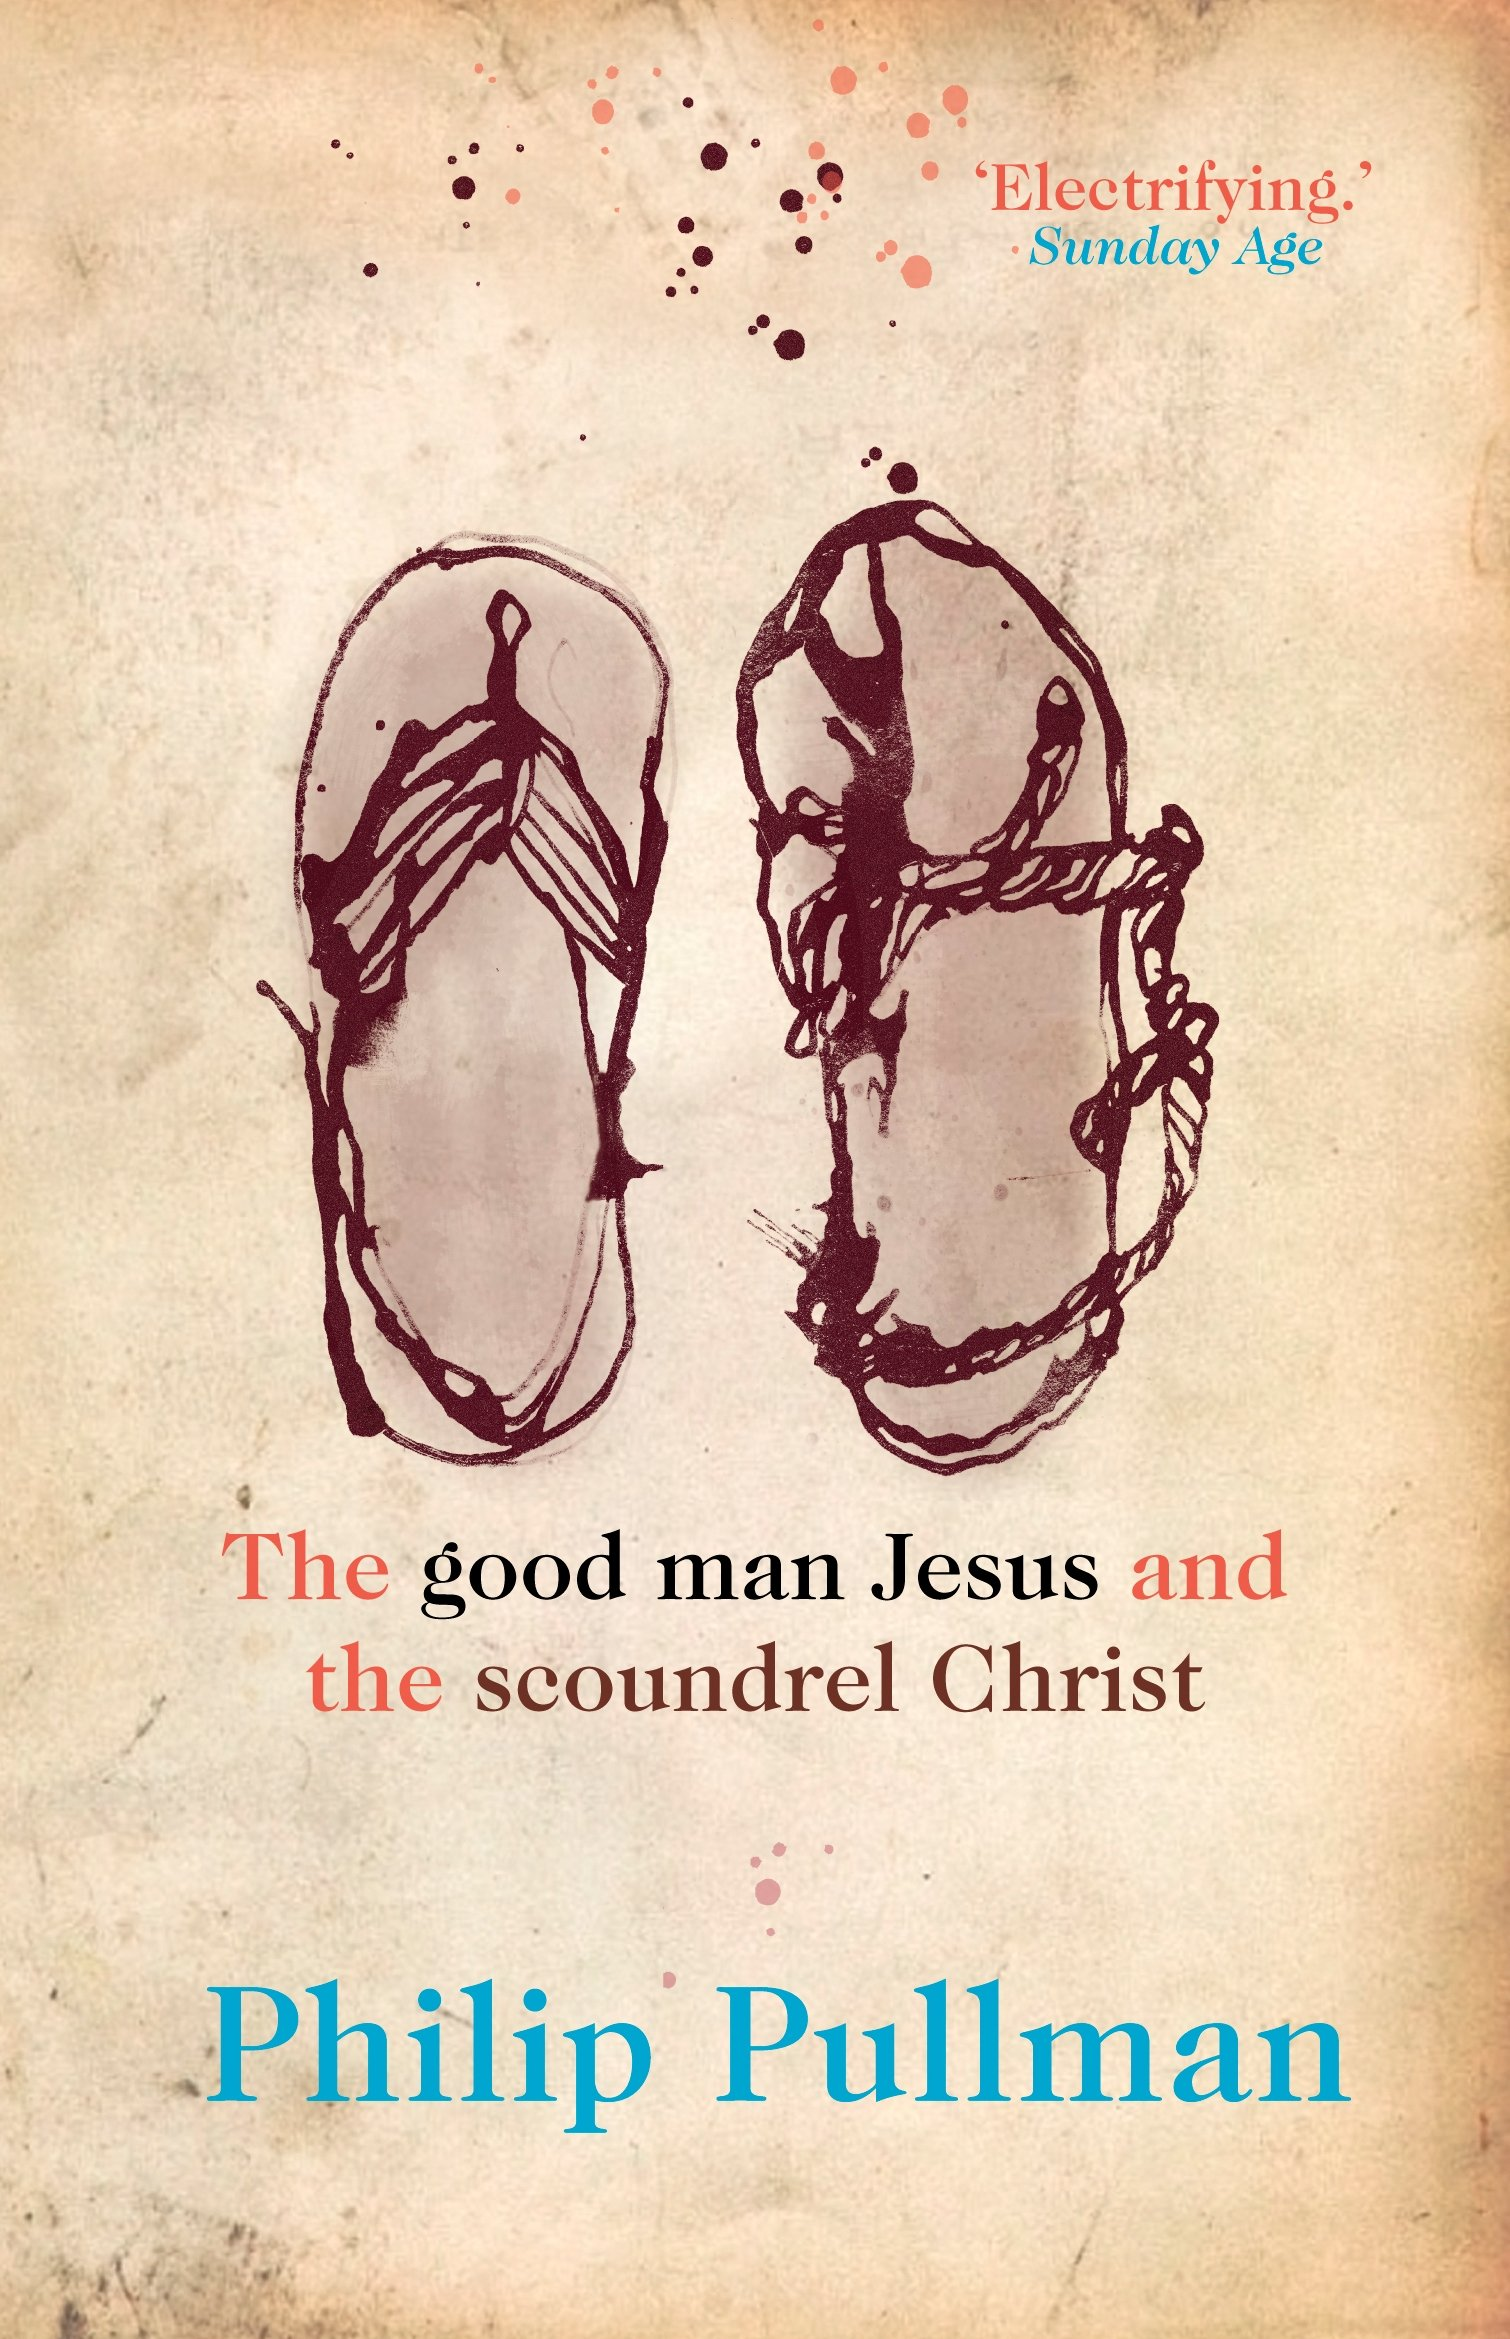 The Good Man Jesus And The Sco...